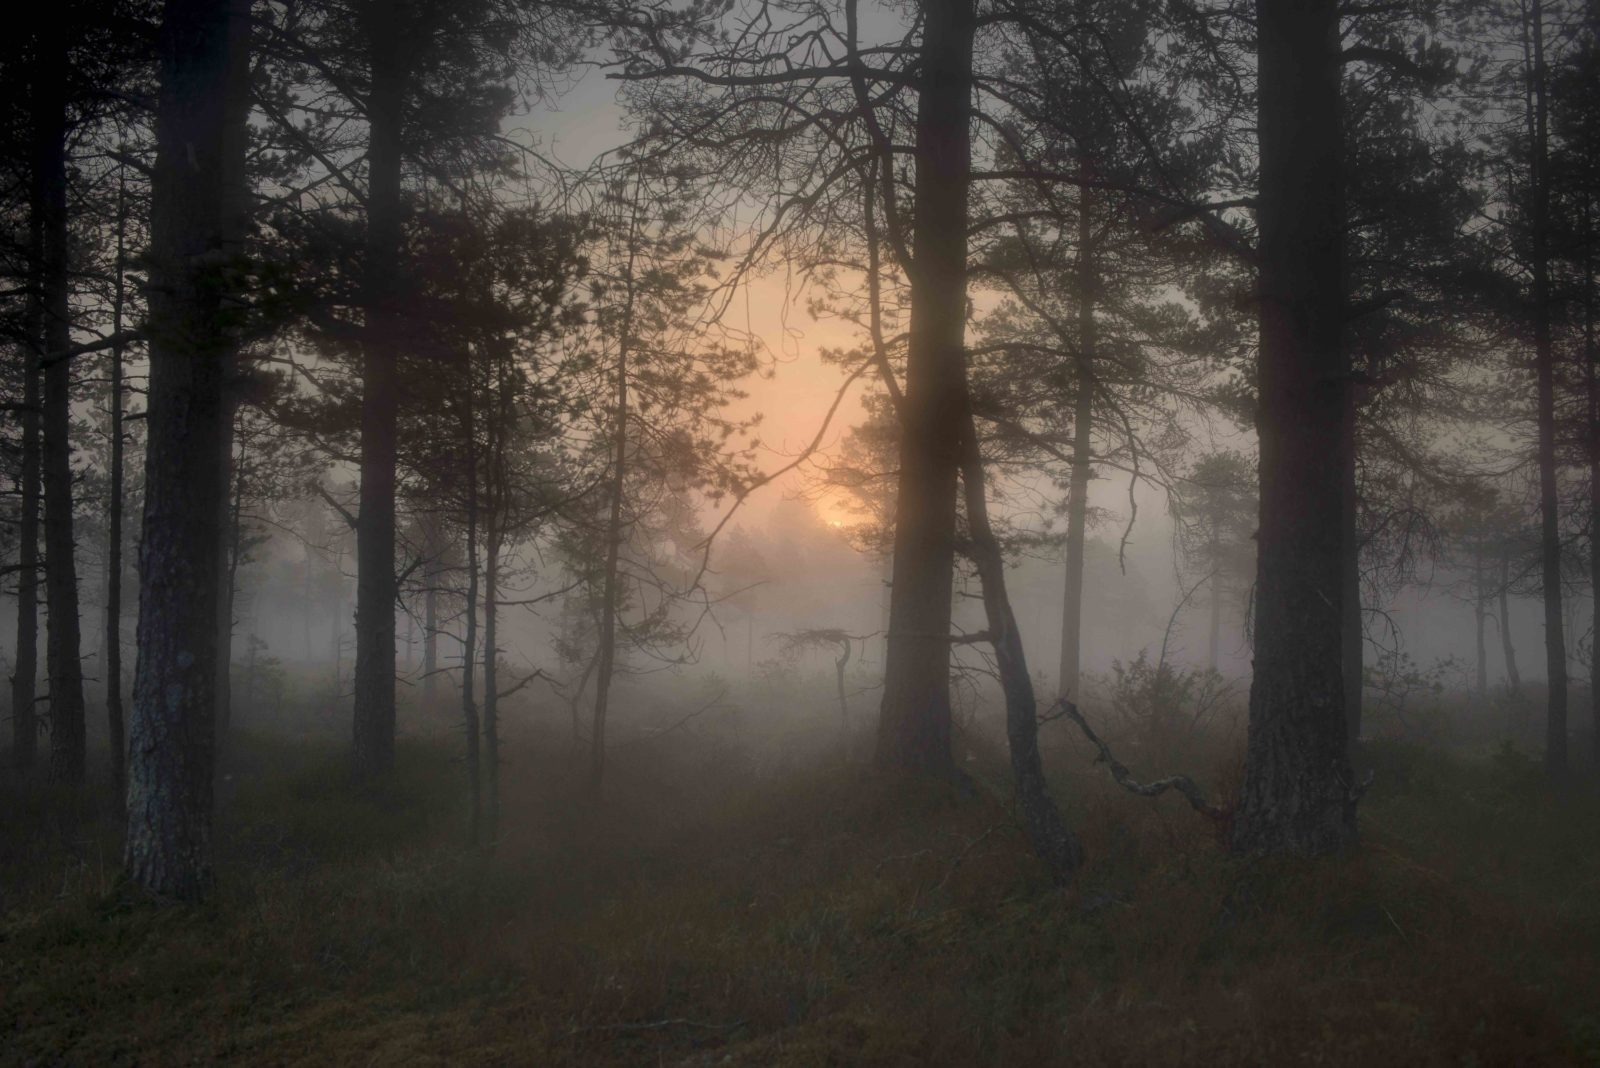 Todd-Hido-Untitled2c-Bright-Black-World2c-2017-Courtesy-Reflex-Gallery-Amsterdam